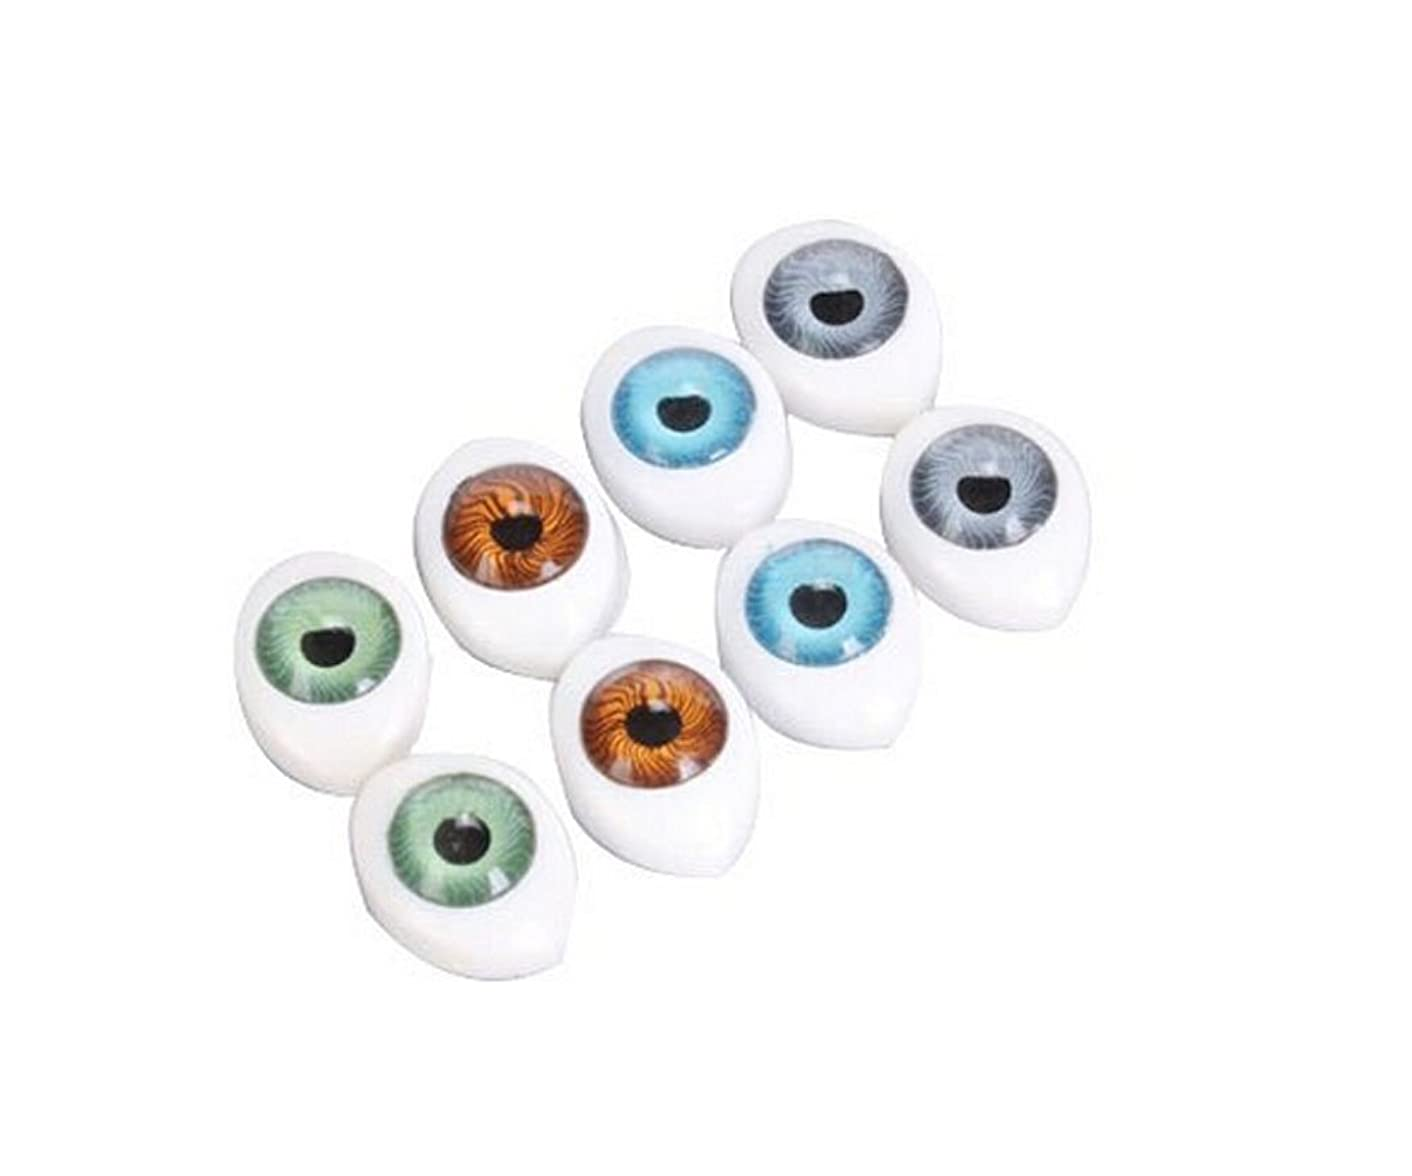 8 Pairs(16PCS) Oval Flat Hollow Back Plastic Eyes Puppet Doll Bear Craft Eyes Eyeballs Mask Making DIY Supplies for Porcelain or Reborn Dolls Stuffed Animal Toys Troll Scary Eyes 10mm x 14mm